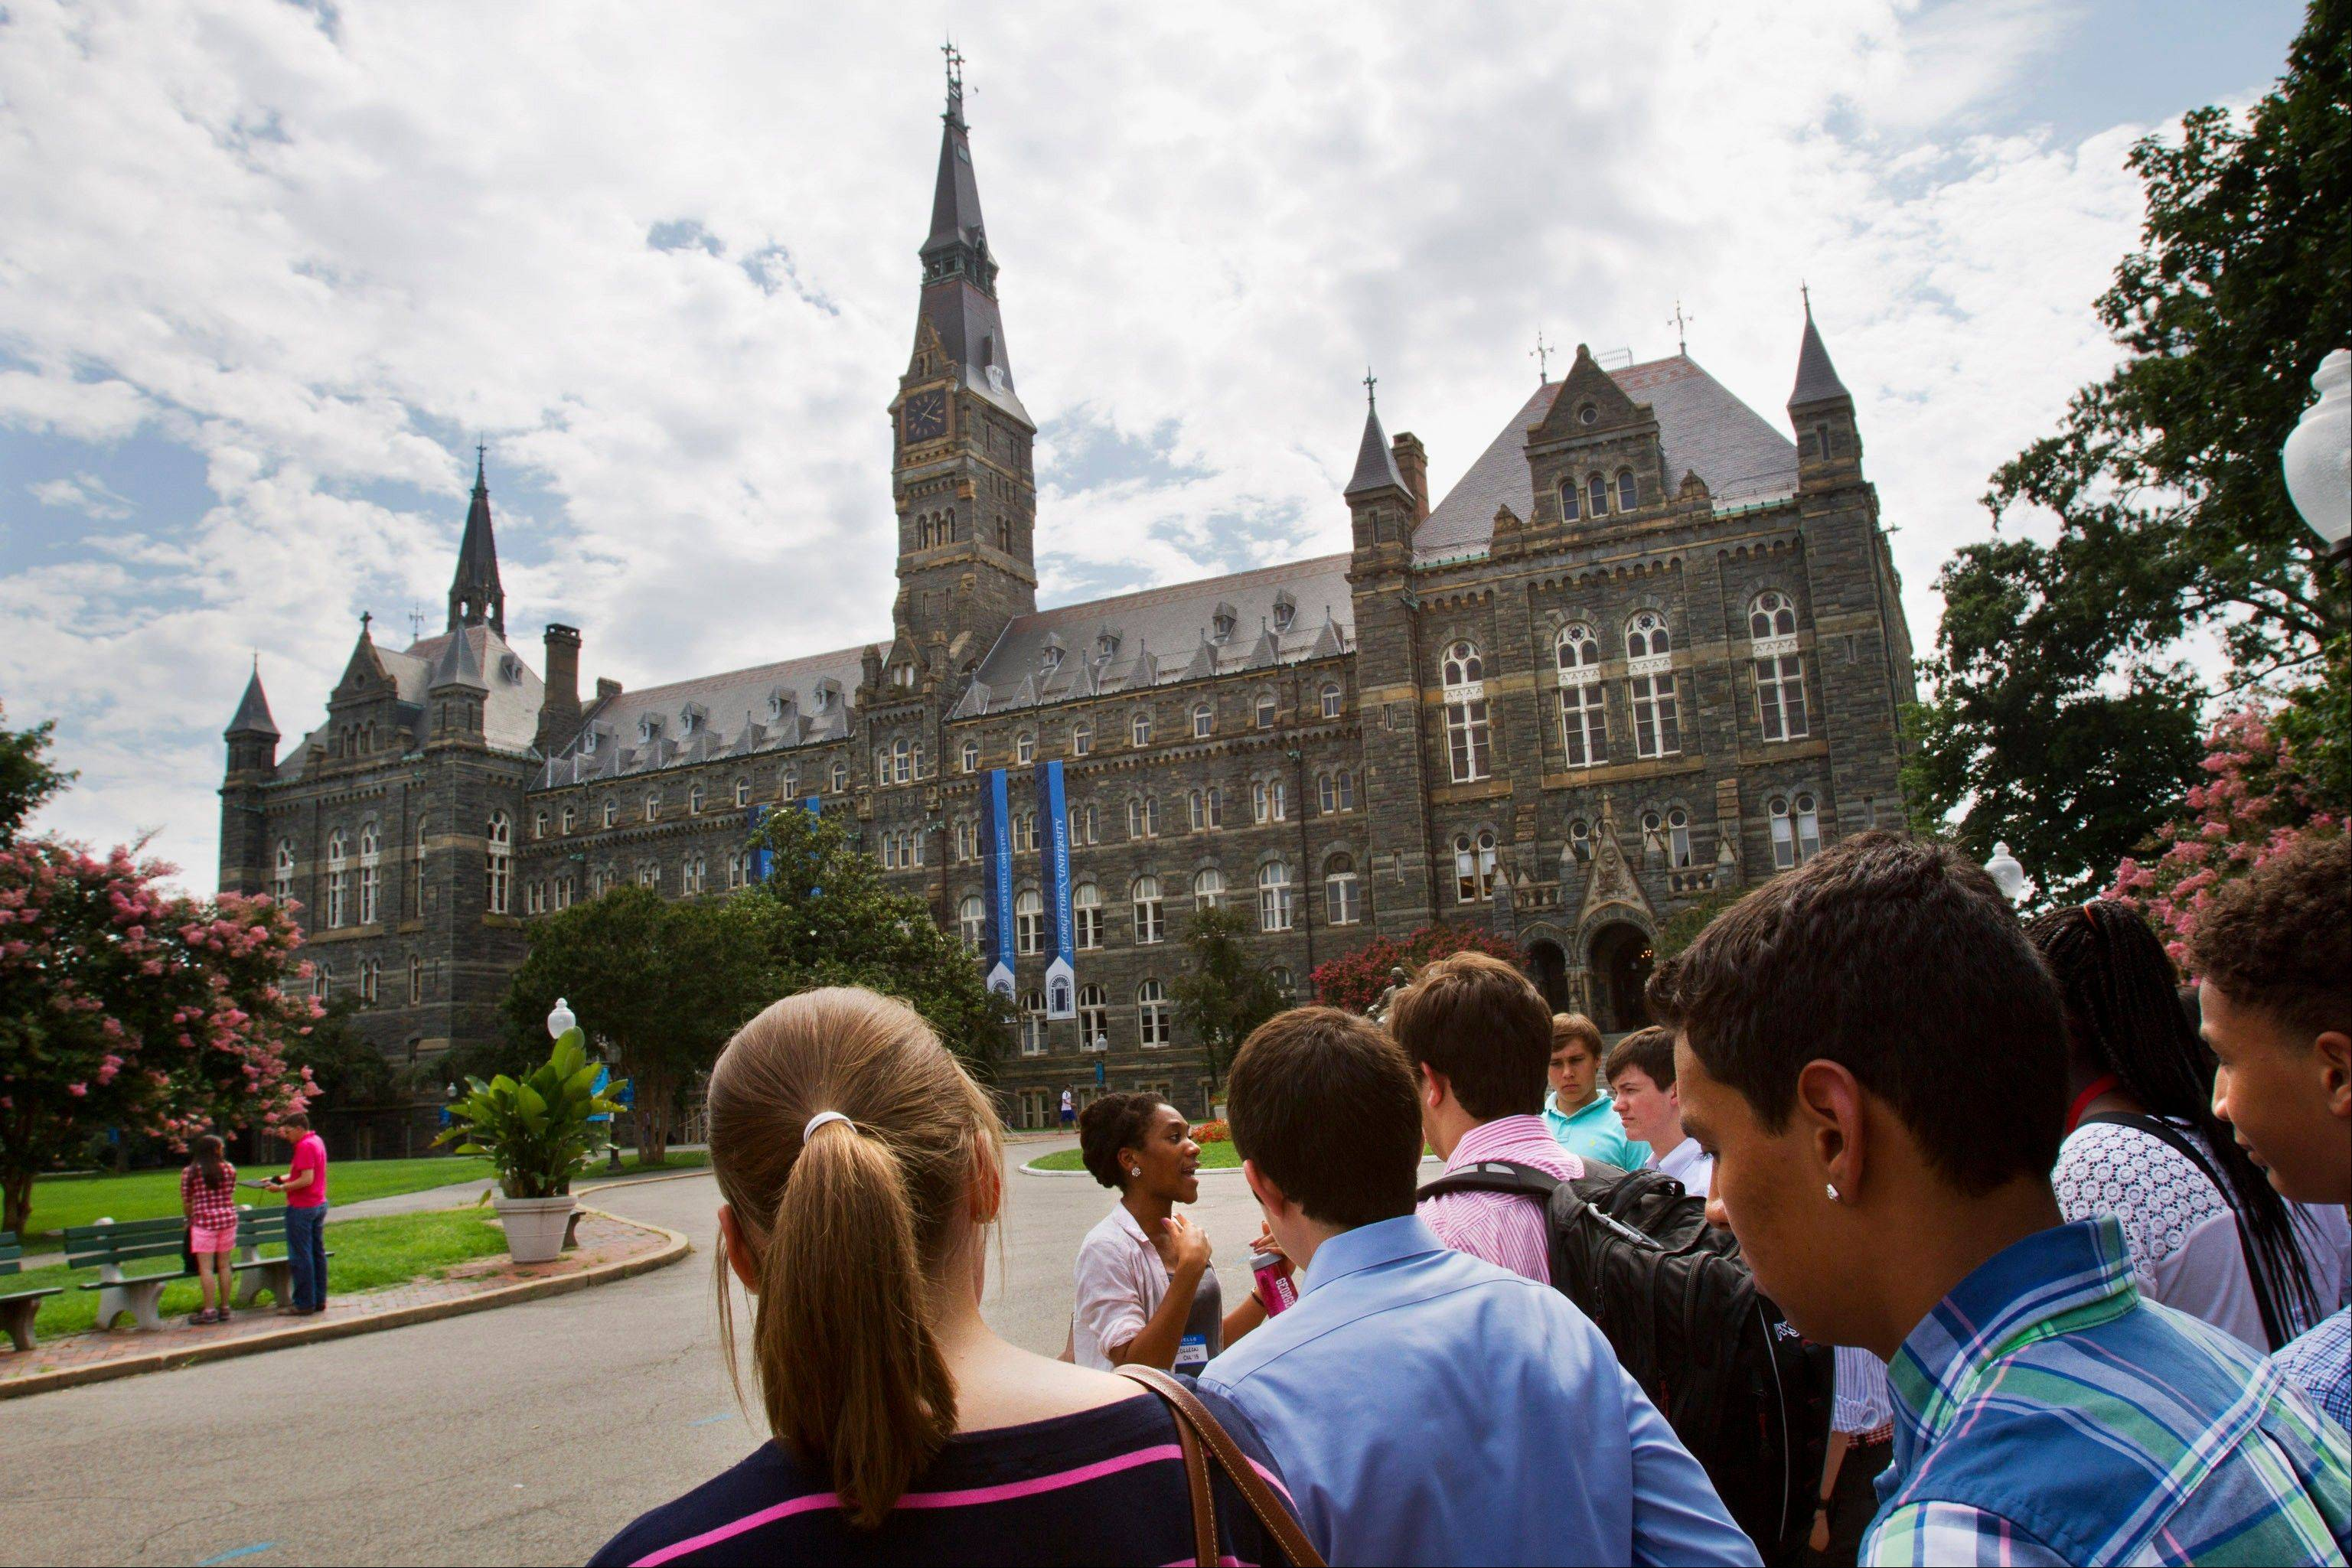 Prospective students tour Georgetown University's campus in Washington, in this Wednesday, July 10, 2013, file photo. The Senate was weighing legislation Wednesday, July 24, 2013, that would link interest rates to the financial markets, providing lower rates for all college students this fall but perhaps resulting in higher rates in the years ahead.